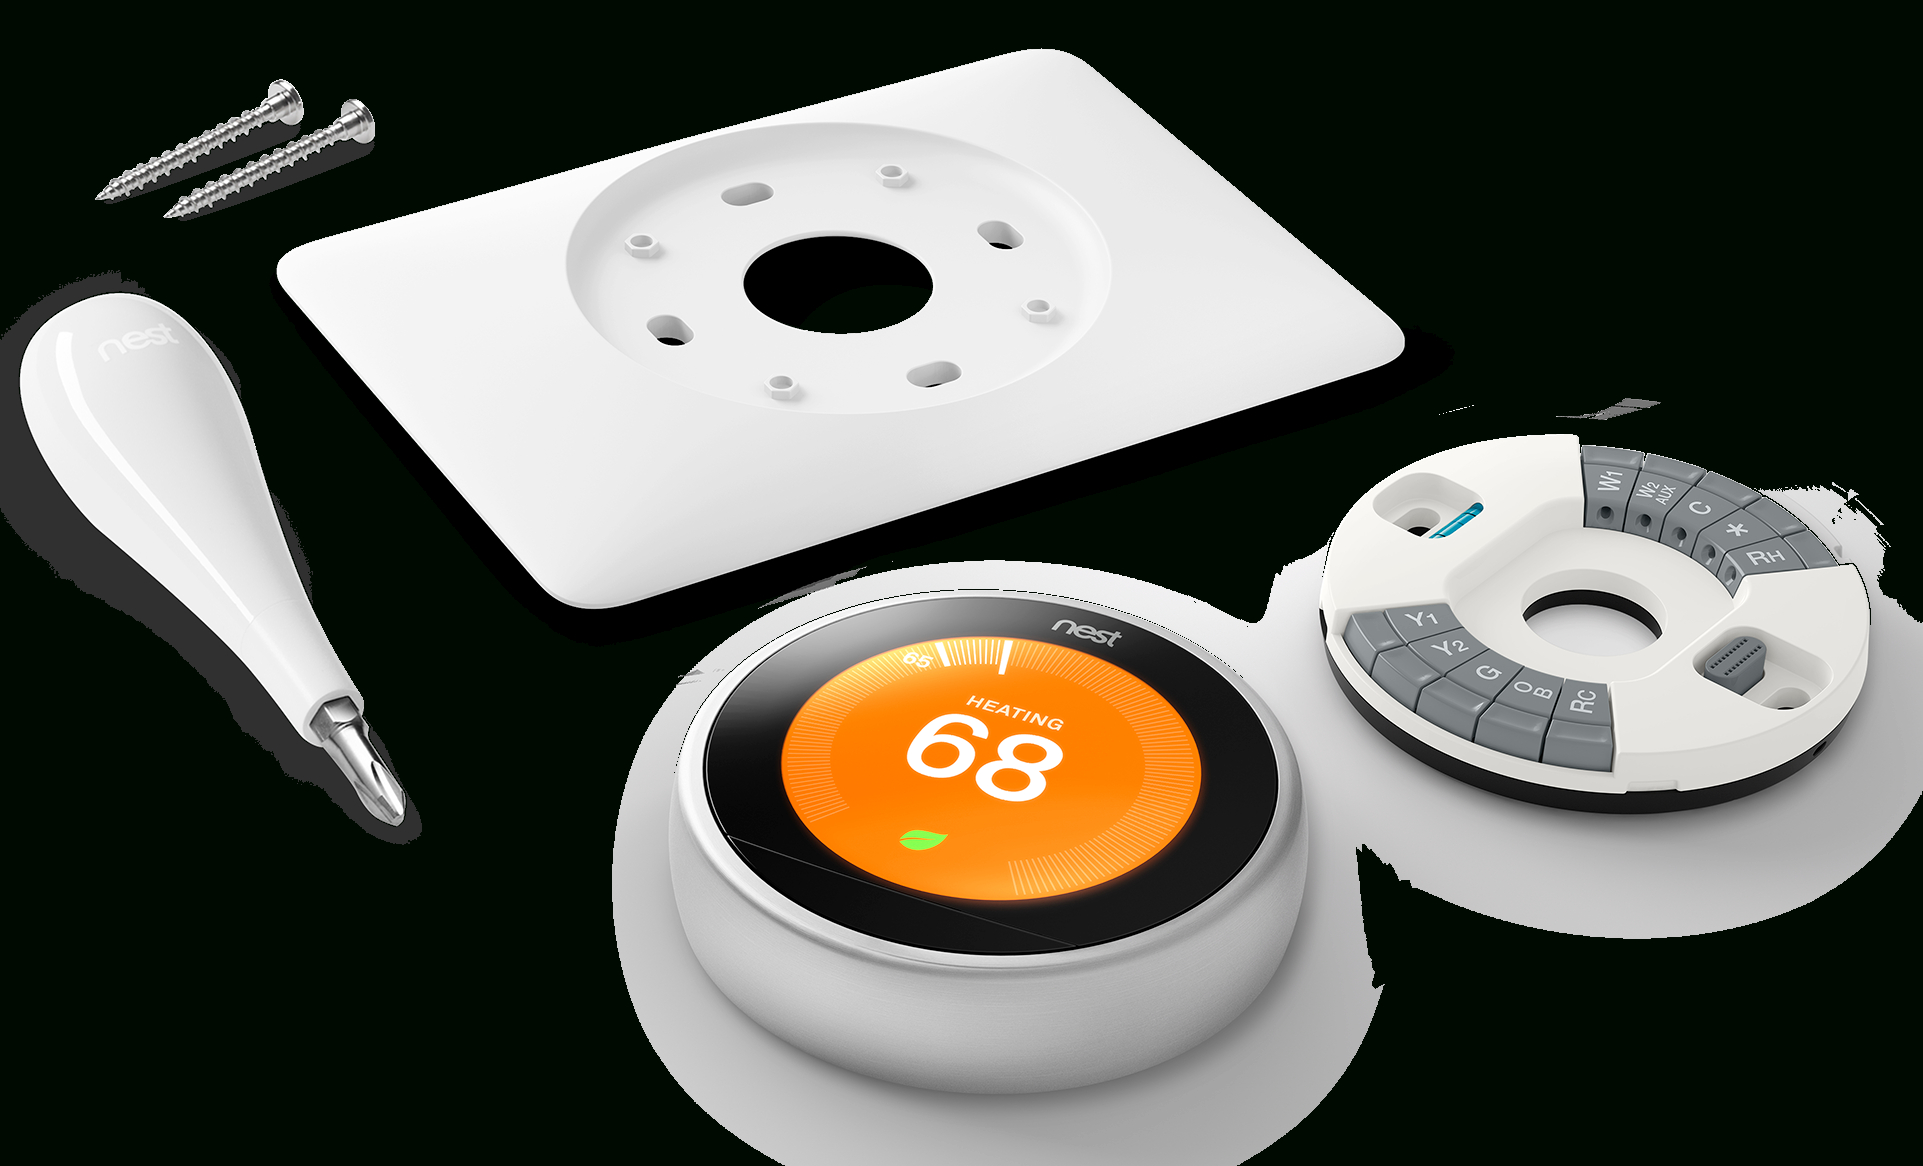 How To Install Your Nest Thermostat - Wiring Diagram Nest A0013 Black Thermostat